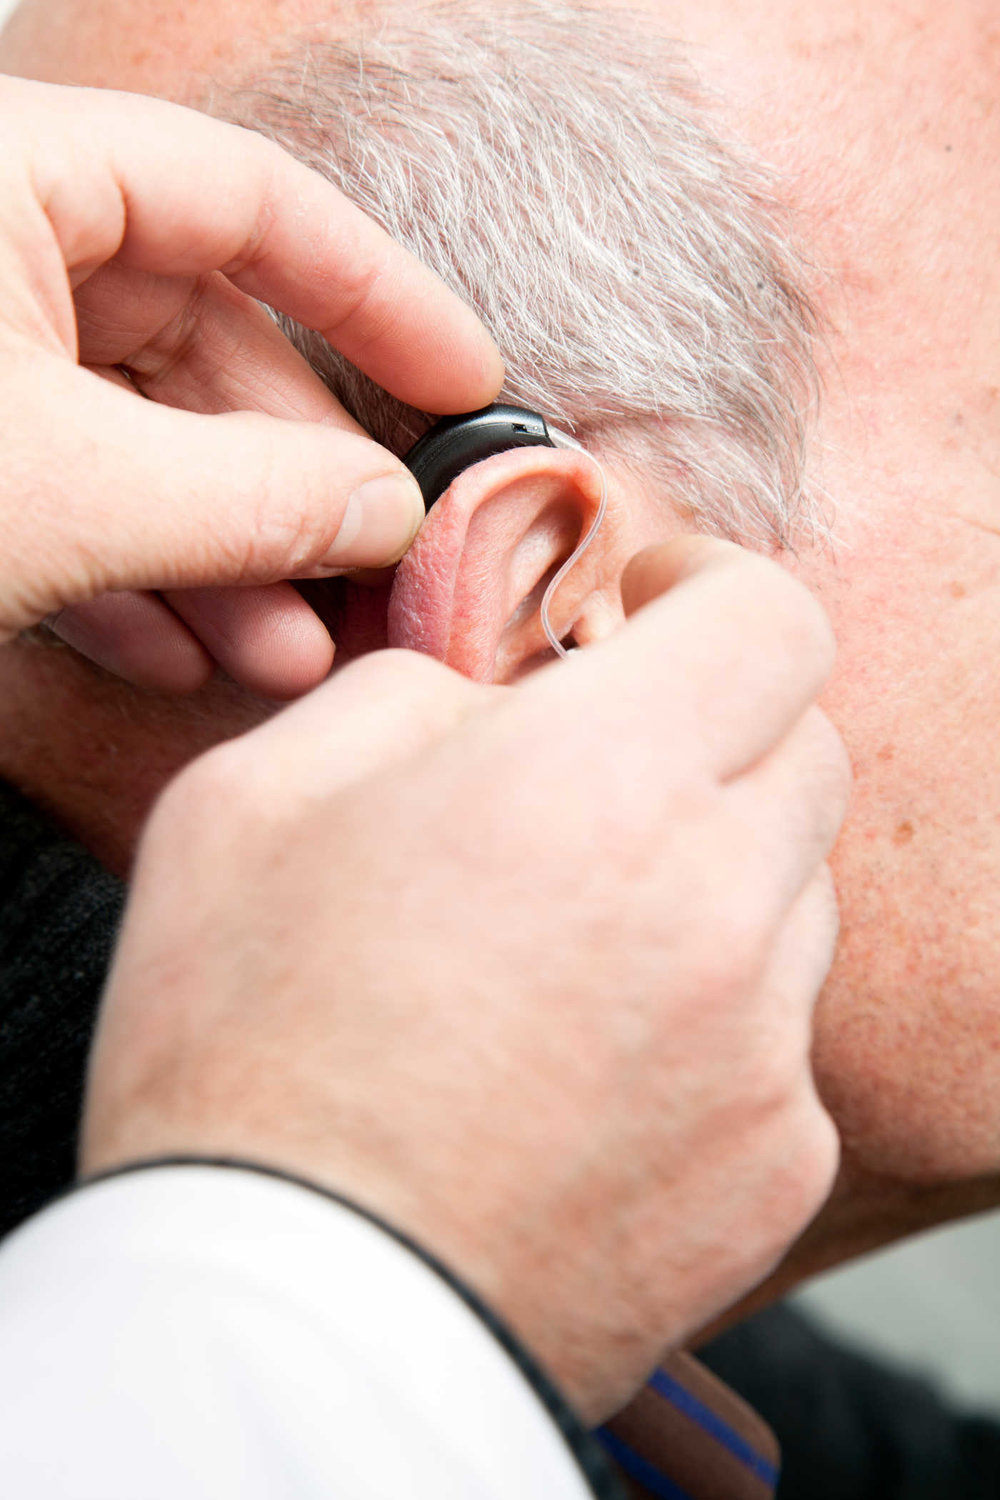 A doctor assiting patient with hearing aid application